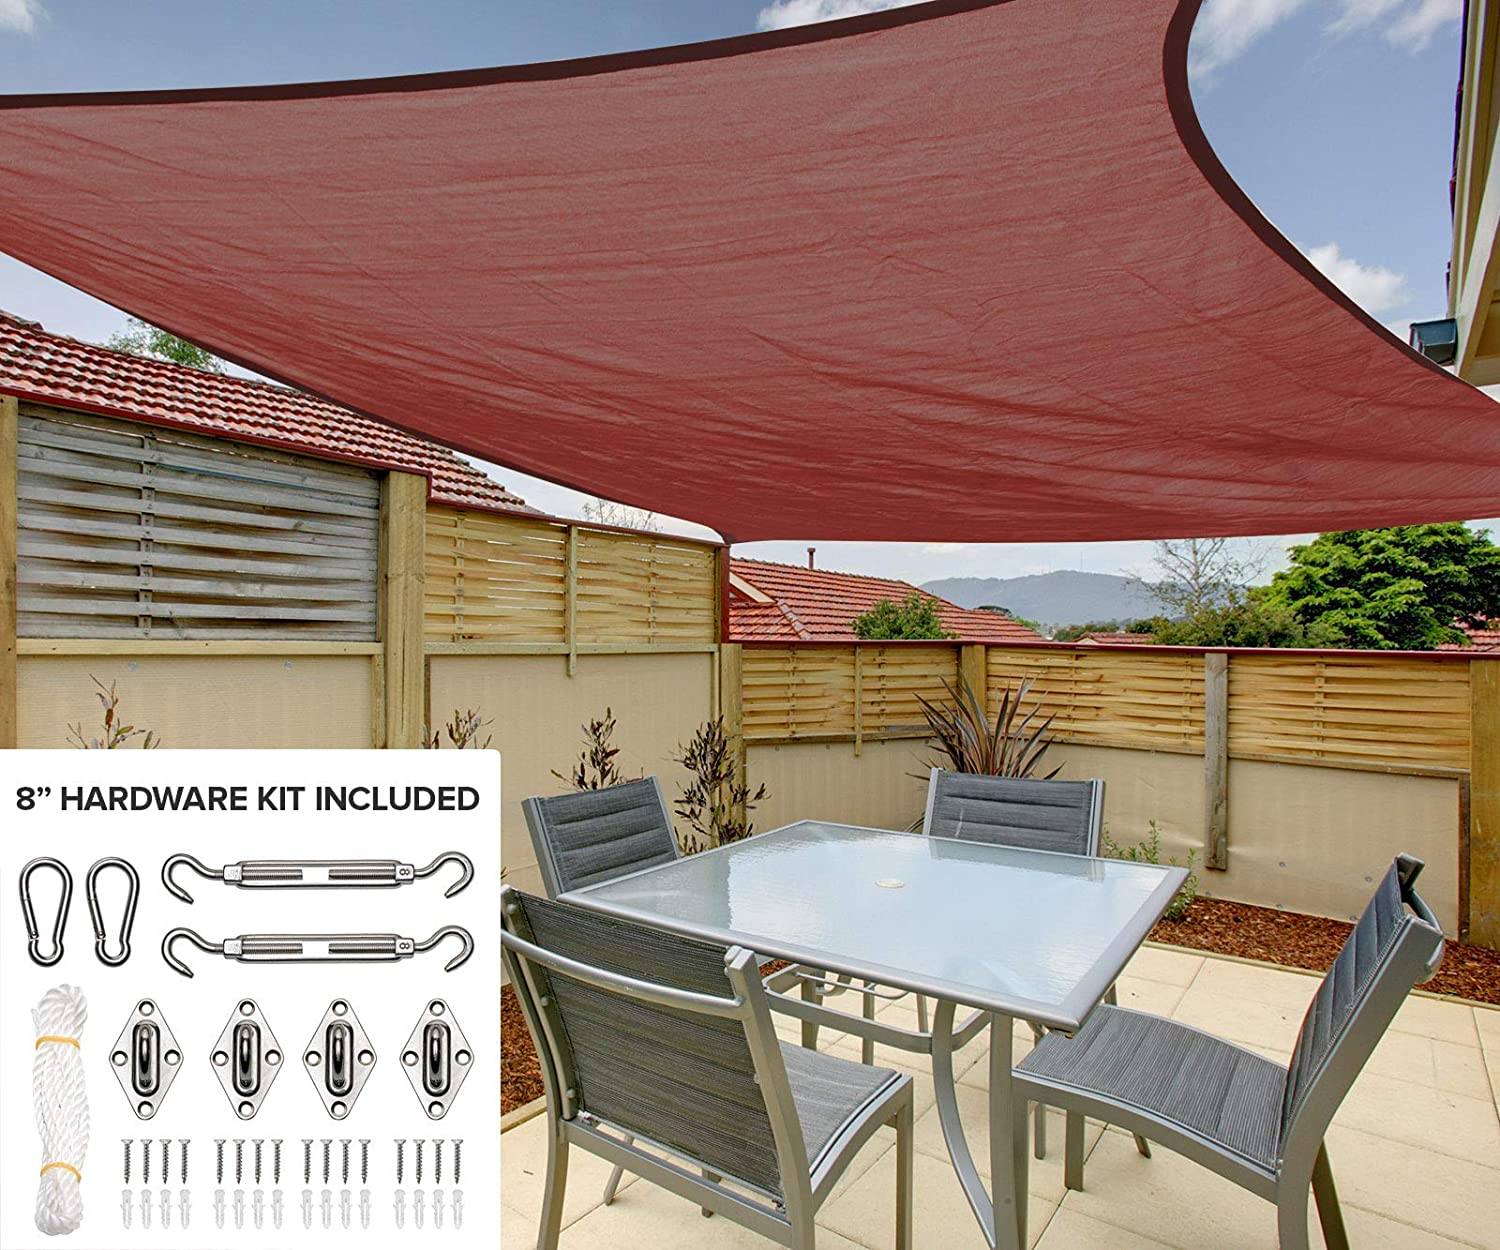 10 x13 Rectangle Sun Shade Sail Canopy in Mahogany – Durable Outdoor Patio Cover Pergola Awning – Heavy Duty 8 inch Stainless Steel Hardware Kit 10 x13 Rectangle, Mahogany